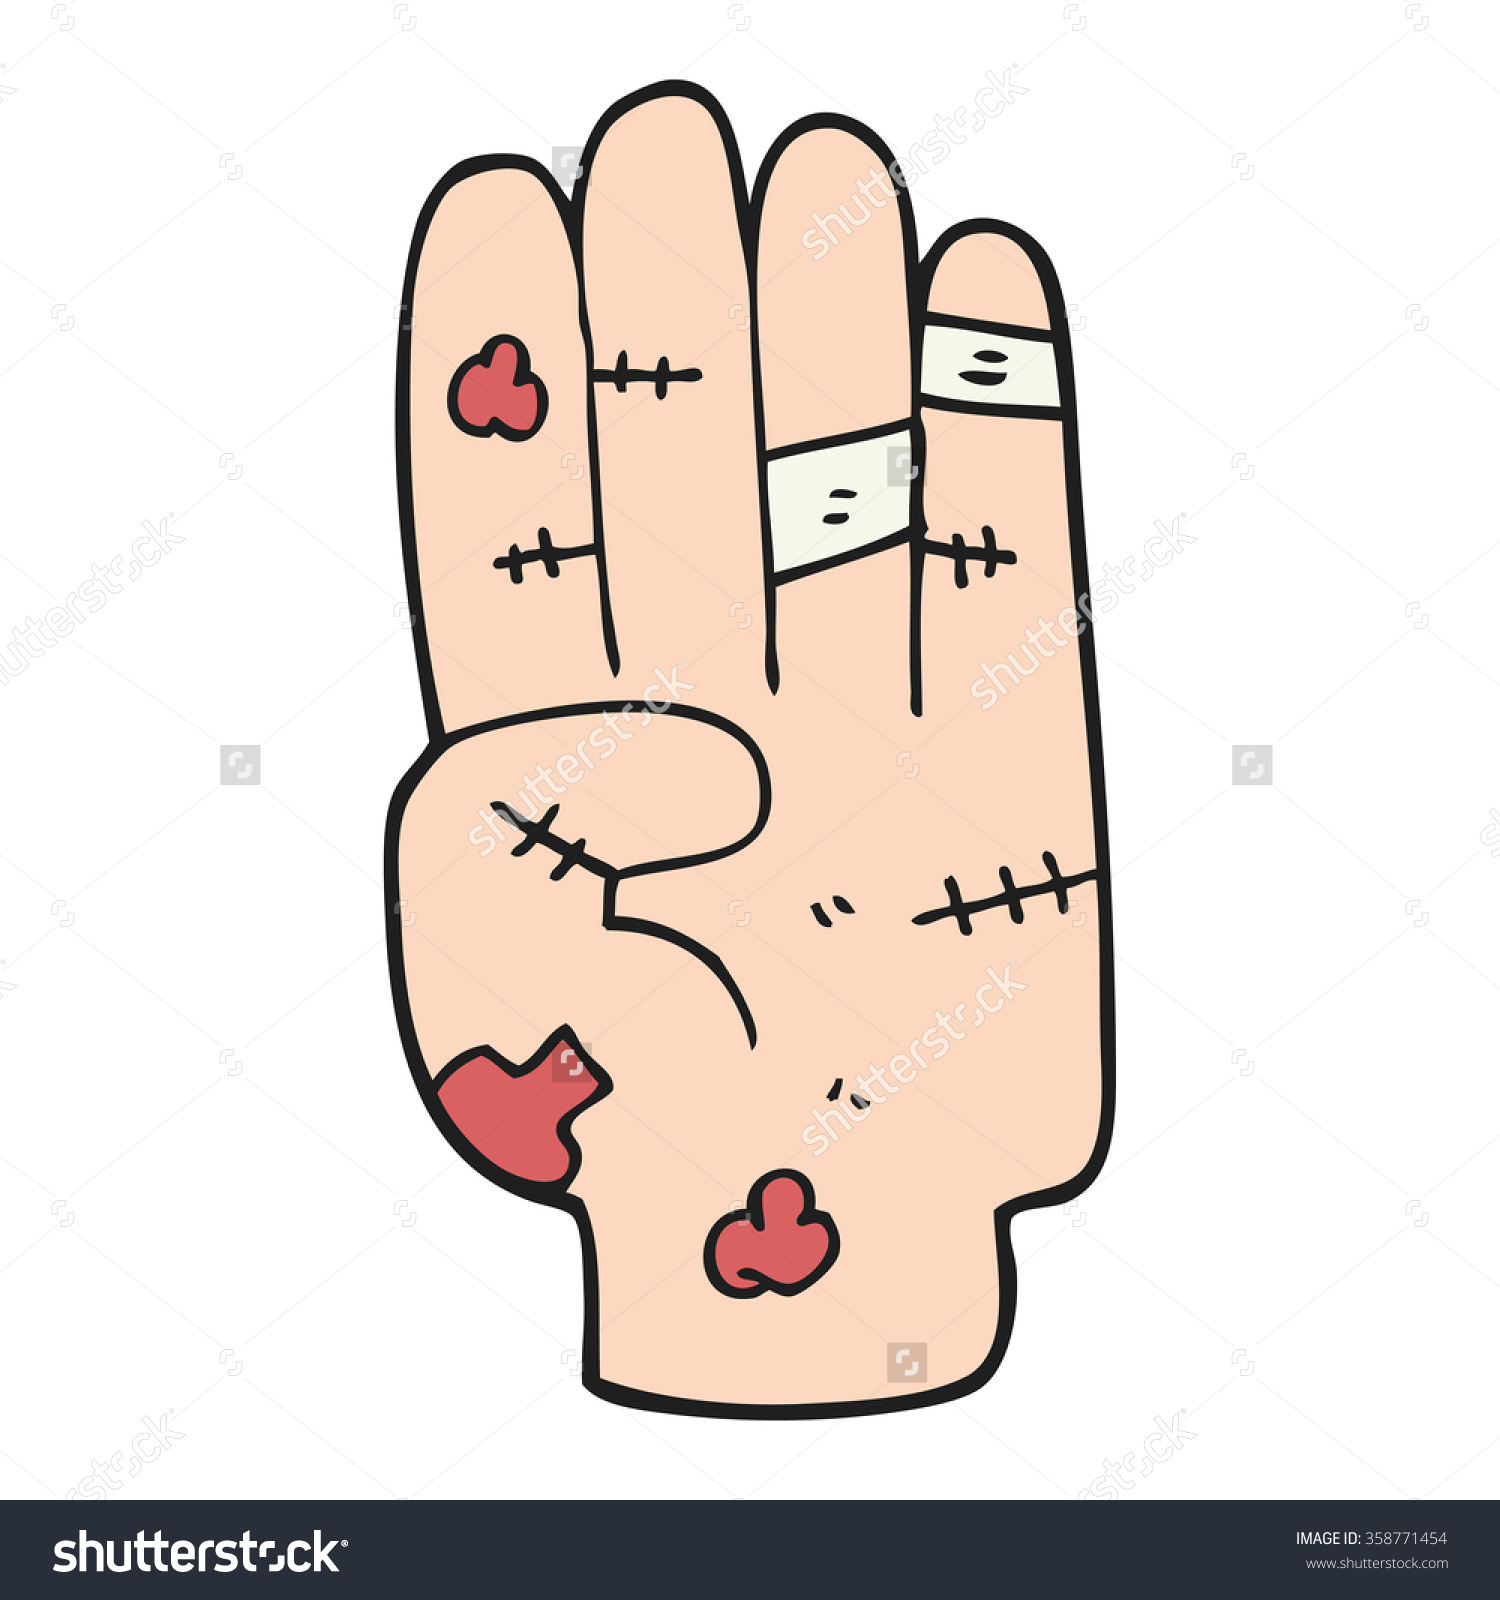 Hand injury clipart.